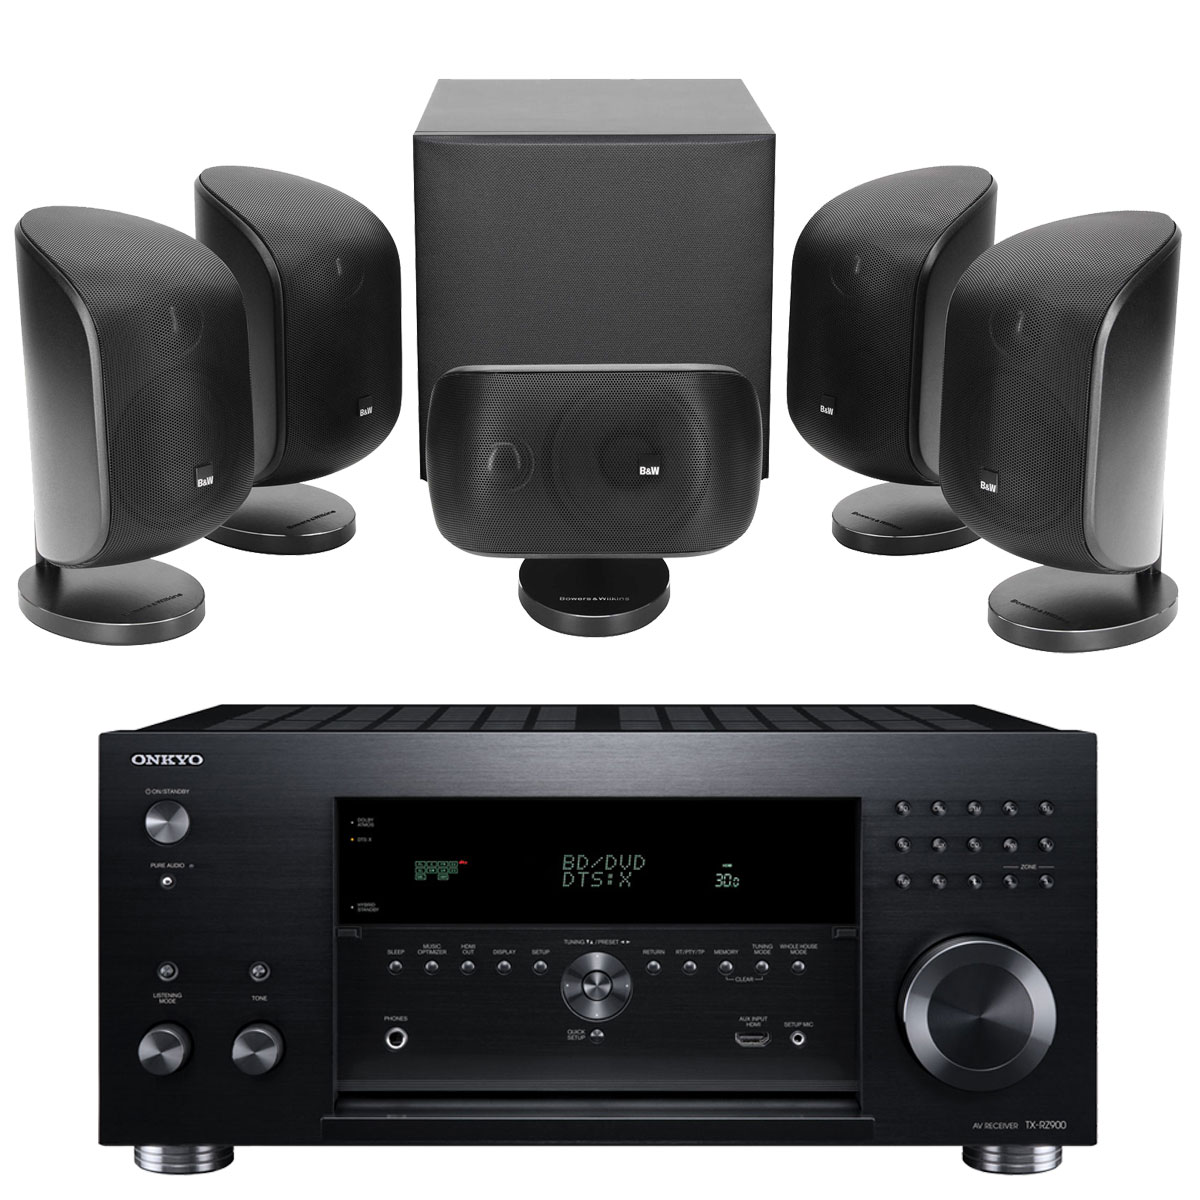 onkyo tx rz900 noir b w mt 50 noir ensemble home cin ma onkyo sur. Black Bedroom Furniture Sets. Home Design Ideas